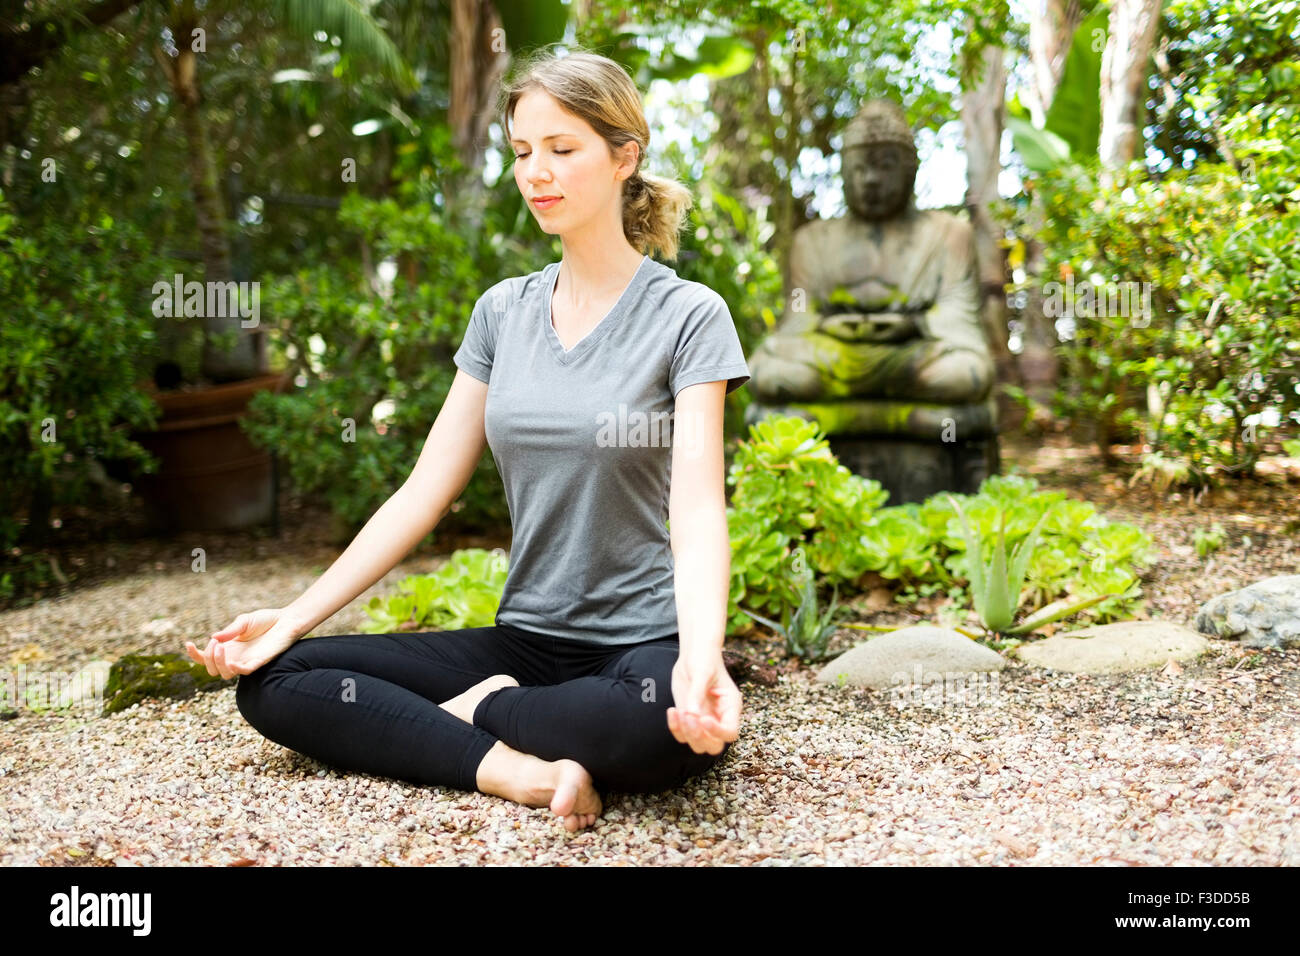 Woman meditating in park - Stock Image